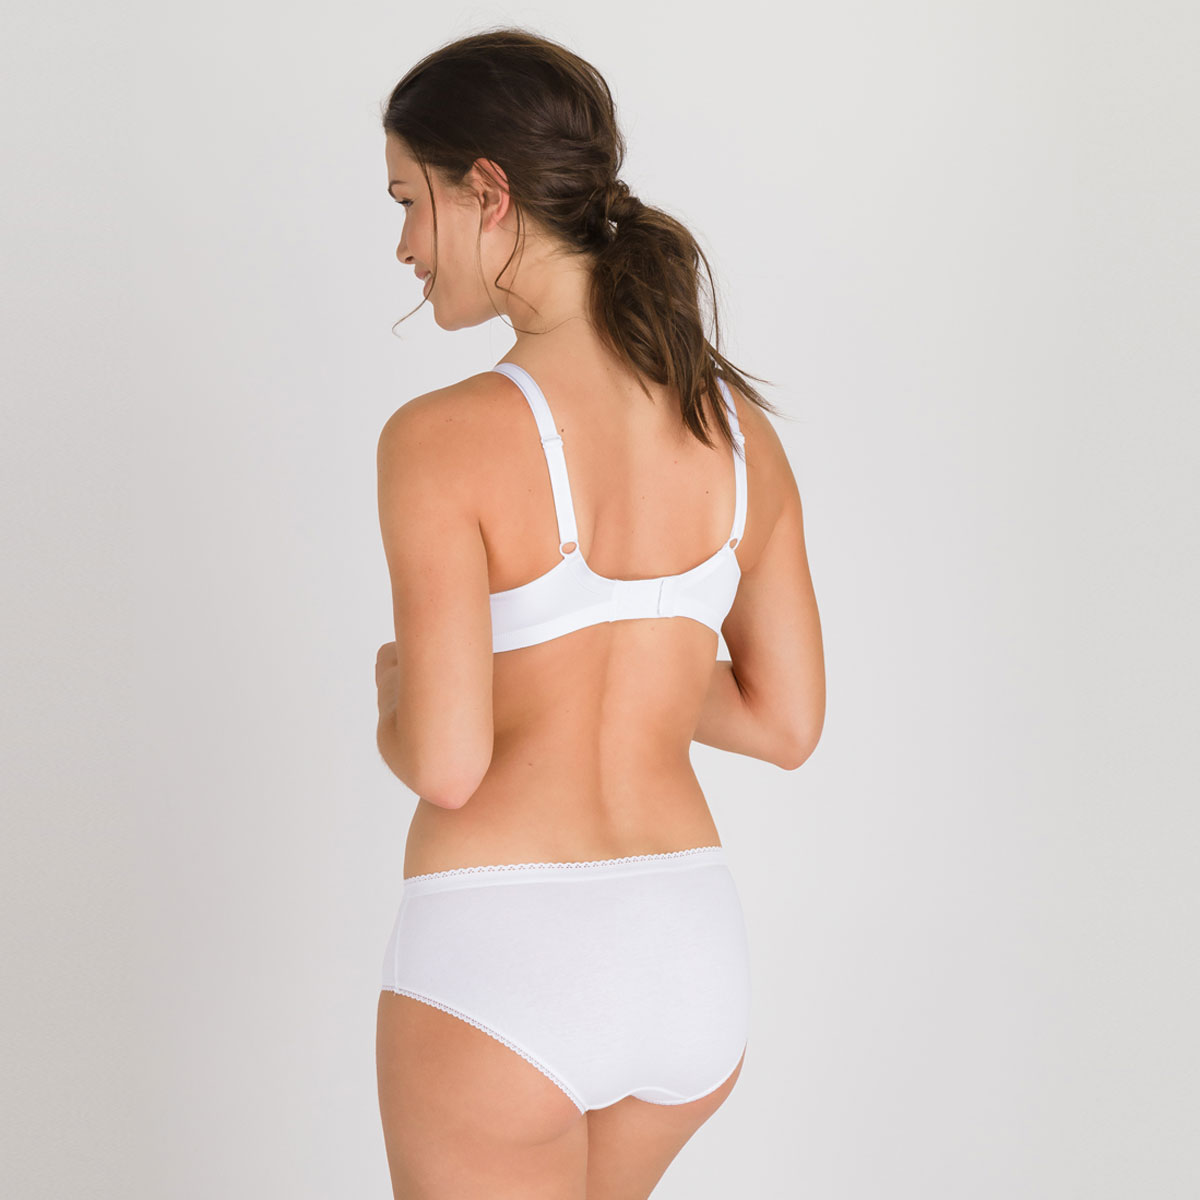 2 non-wired Bras in White– Basic Micro Support-PLAYTEX